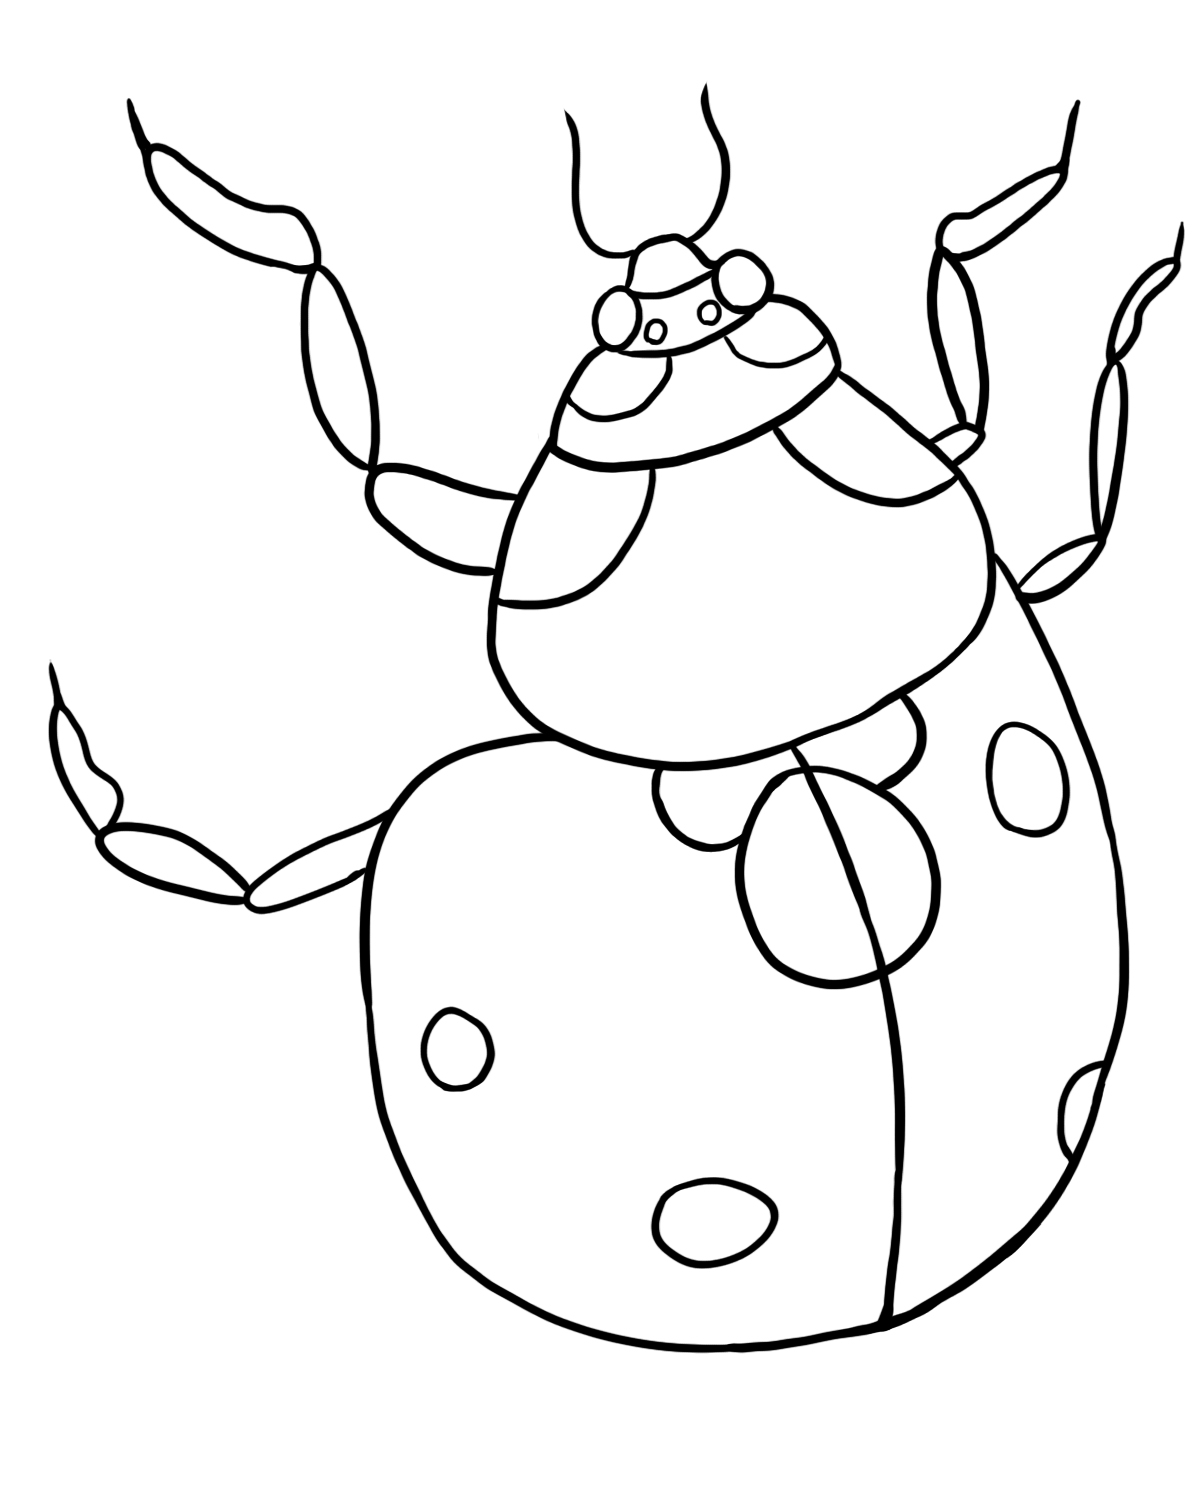 lady bugs coloring pages ladybug coloring pages to download and print for free bugs pages lady coloring